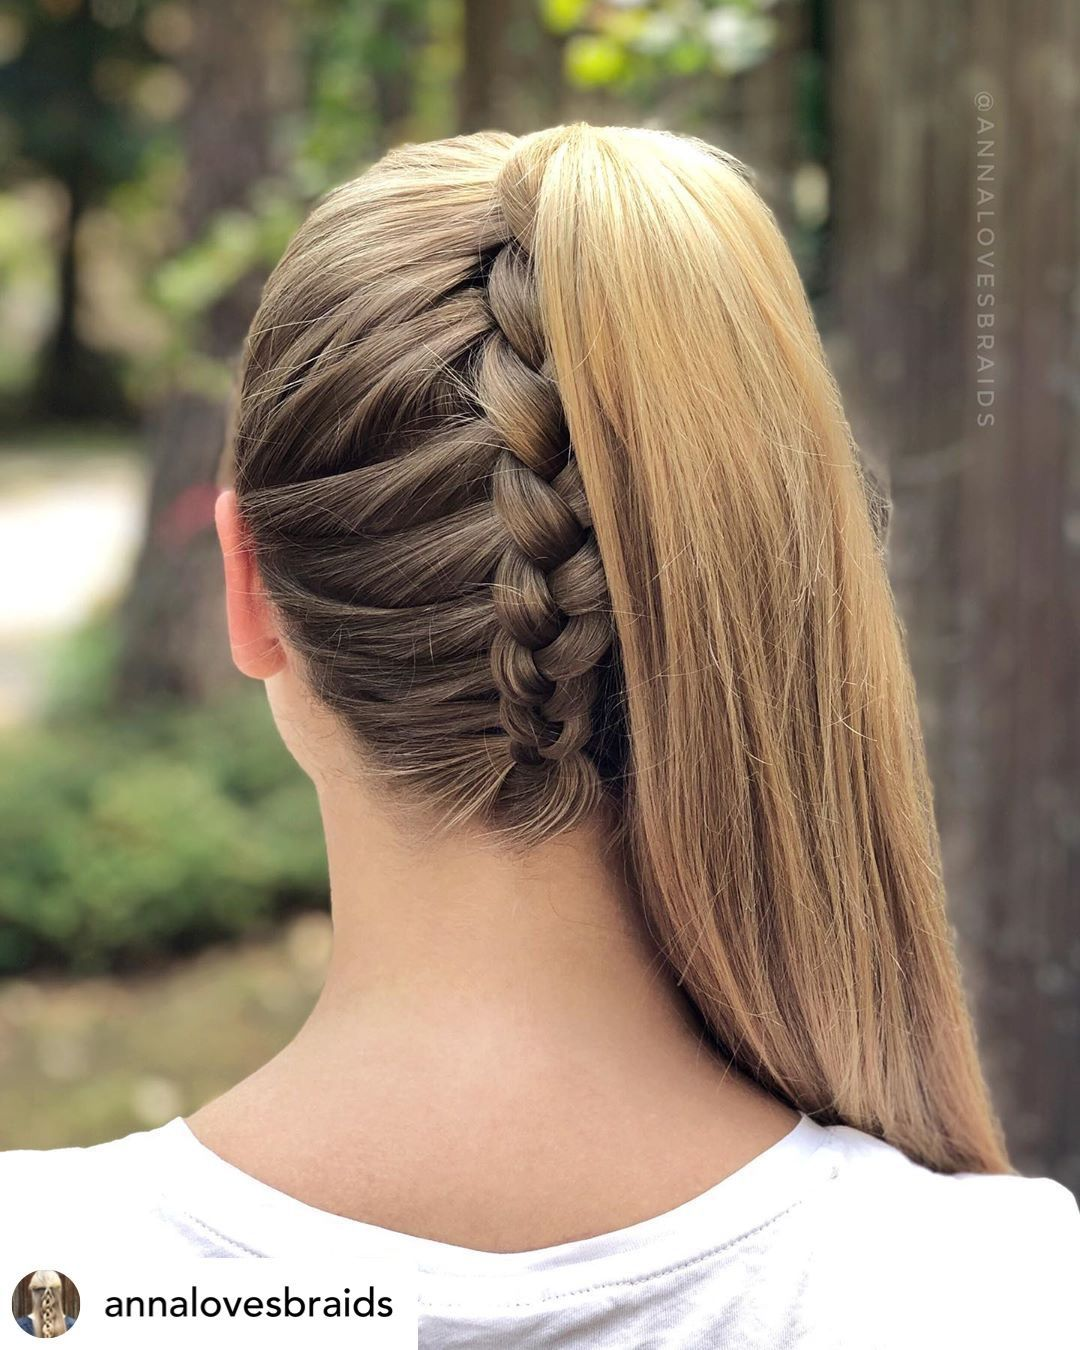 Photo of 10 Ridiculously Easy Hairstyles For School 2020 (Tutorials Included)